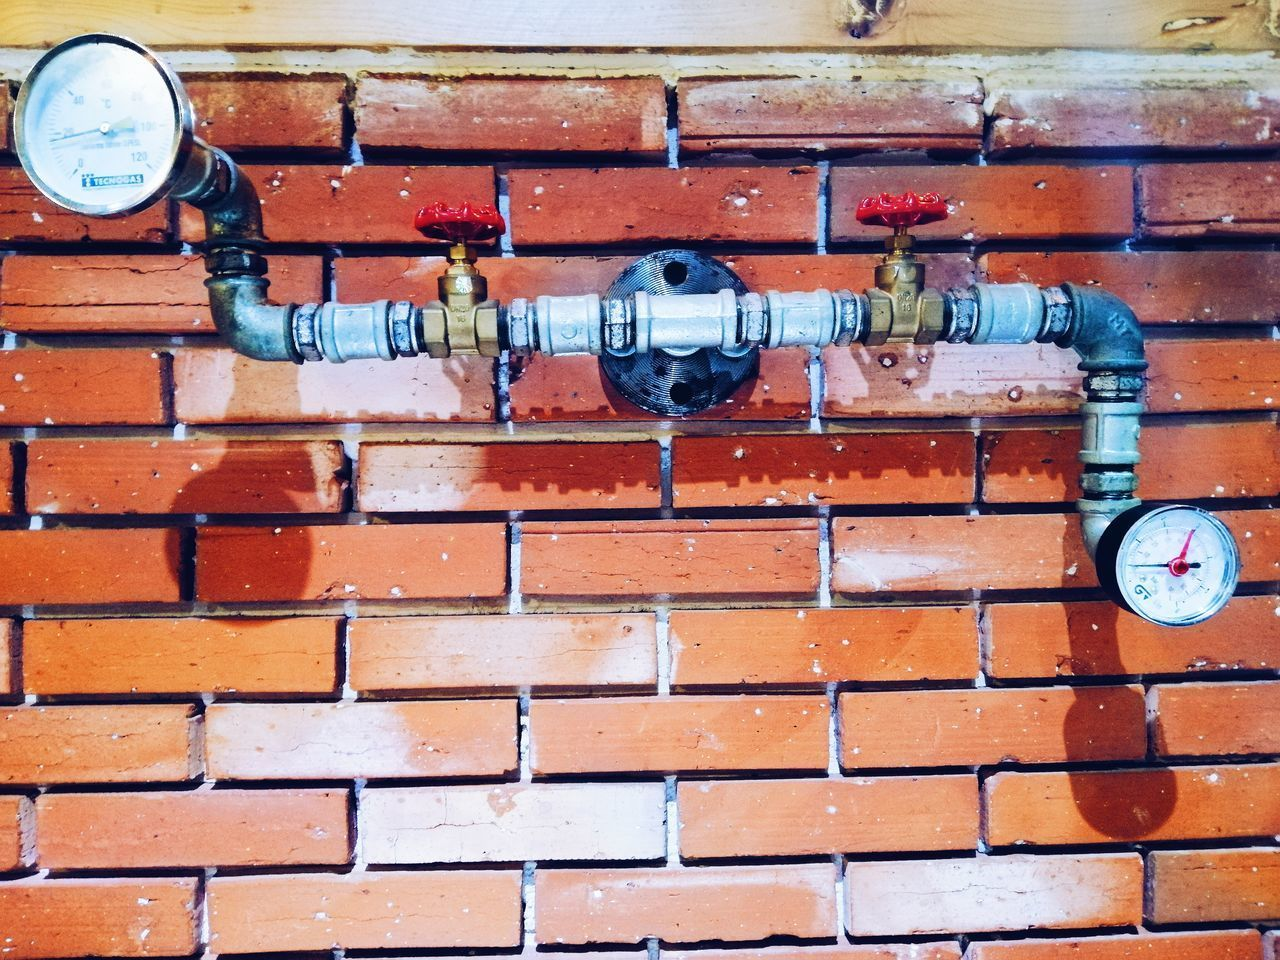 brick, brick wall, wall, no people, wall - building feature, built structure, day, architecture, technology, connection, metal, outdoors, close-up, pipe - tube, pattern, industry, instrument of measurement, accuracy, meter - instrument of measurement